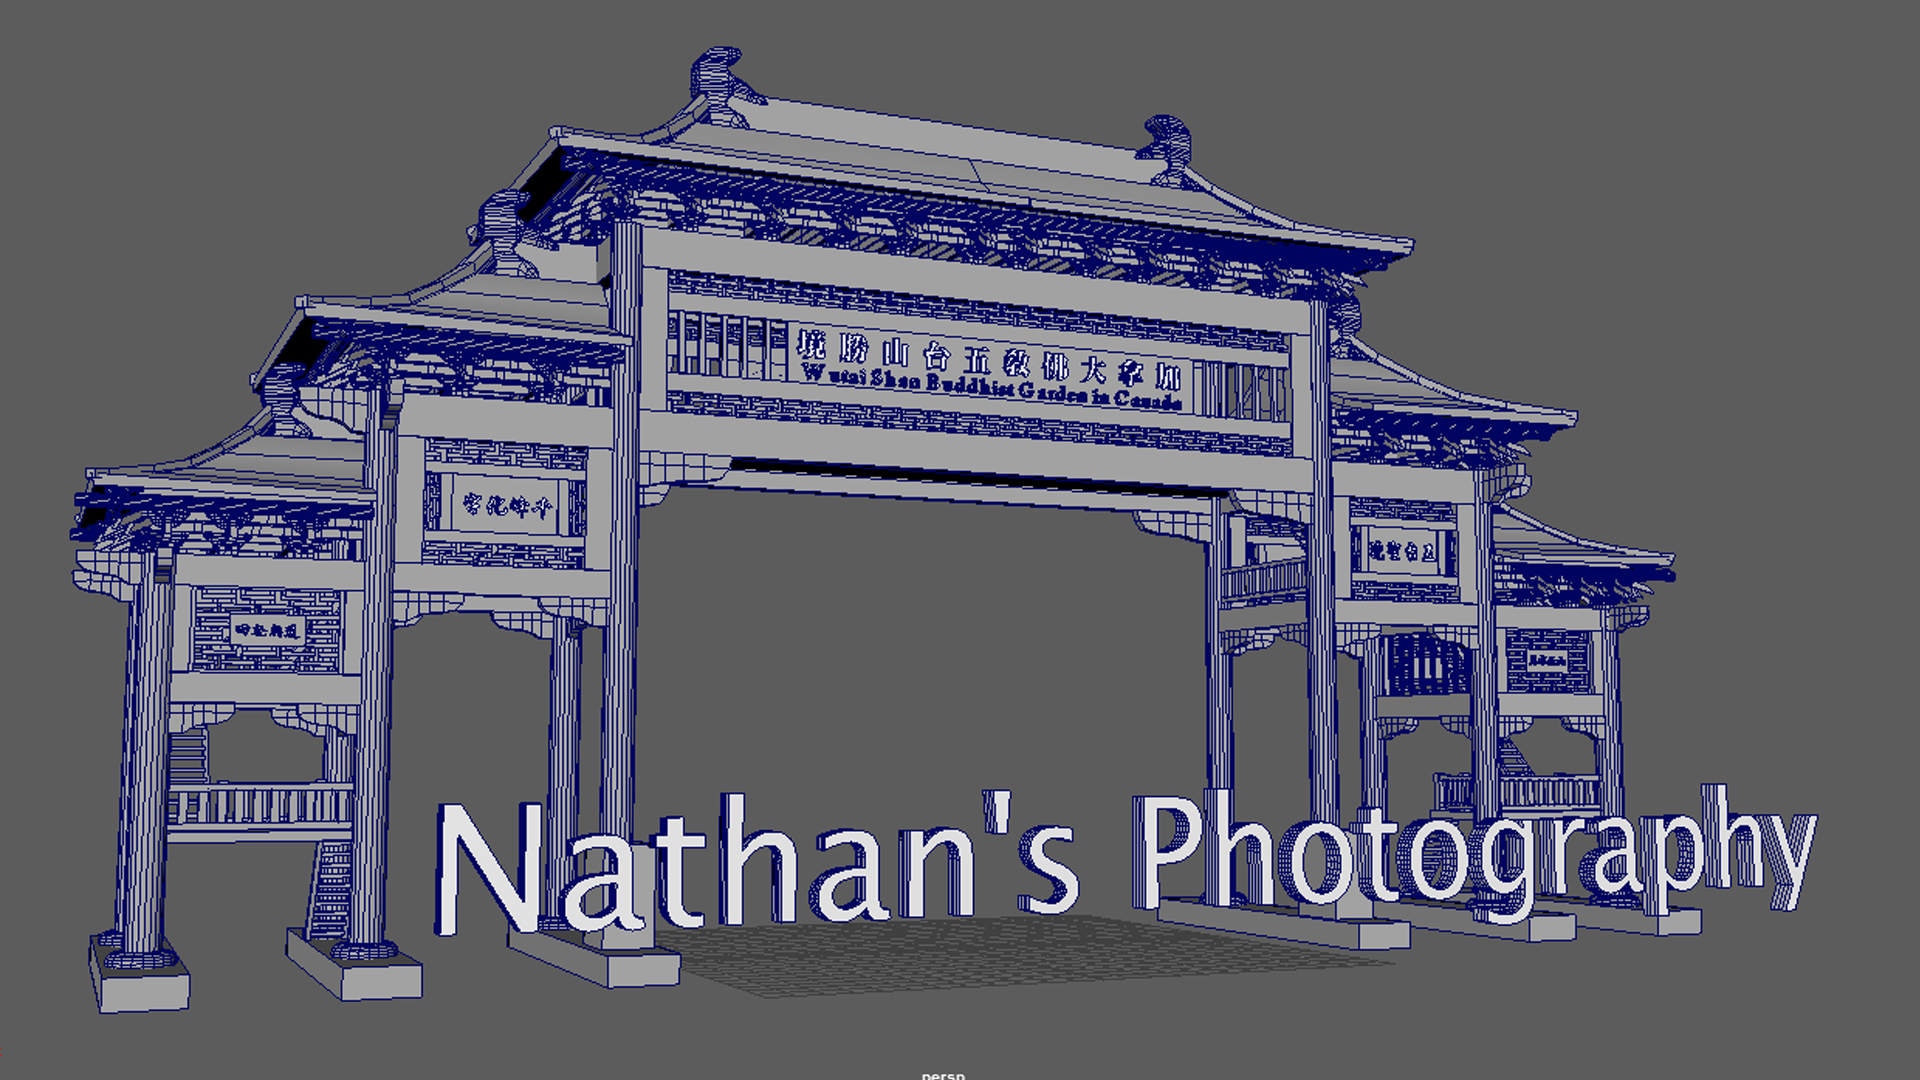 Nathan's Photography